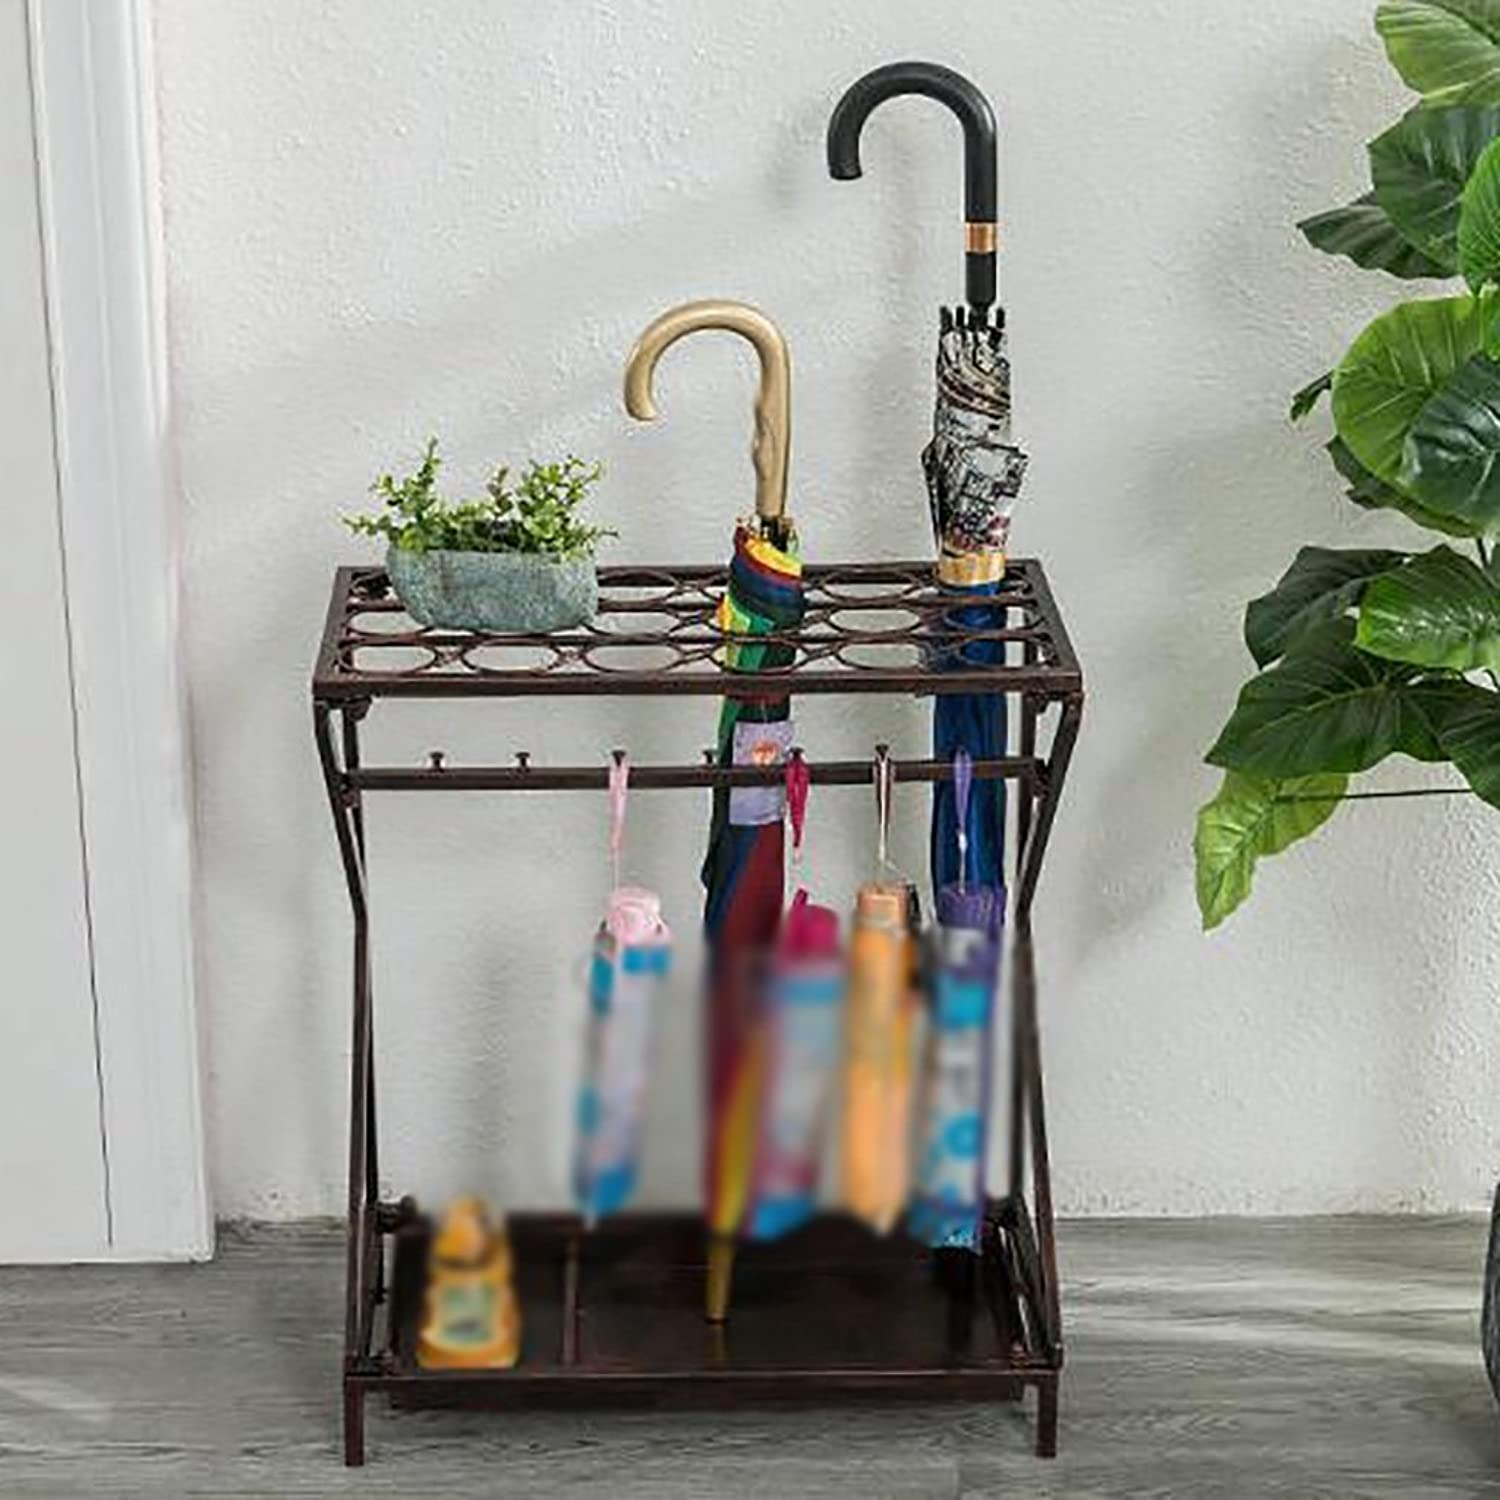 Umbrella Stand Household Umbrella Stand Hotel Lobby Umbrella Storage Rack Wrought Iron Floor Umbrella Storage Shelf Foyer Office Umbrella Bucket (color   E)